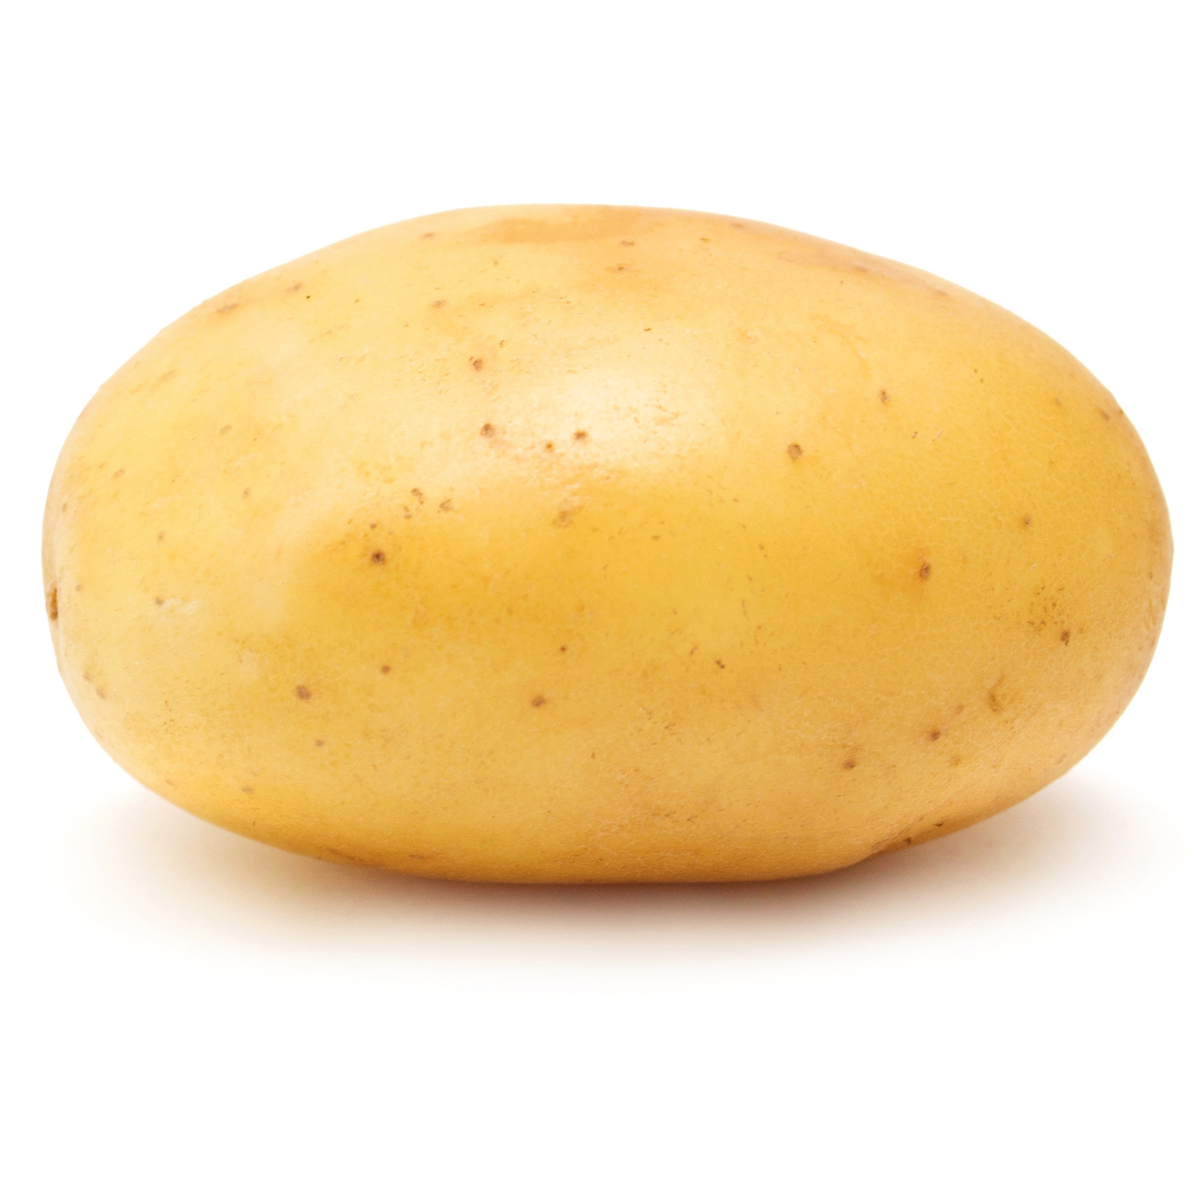 Image of Baking Potatoes (1 = 300g Approx)